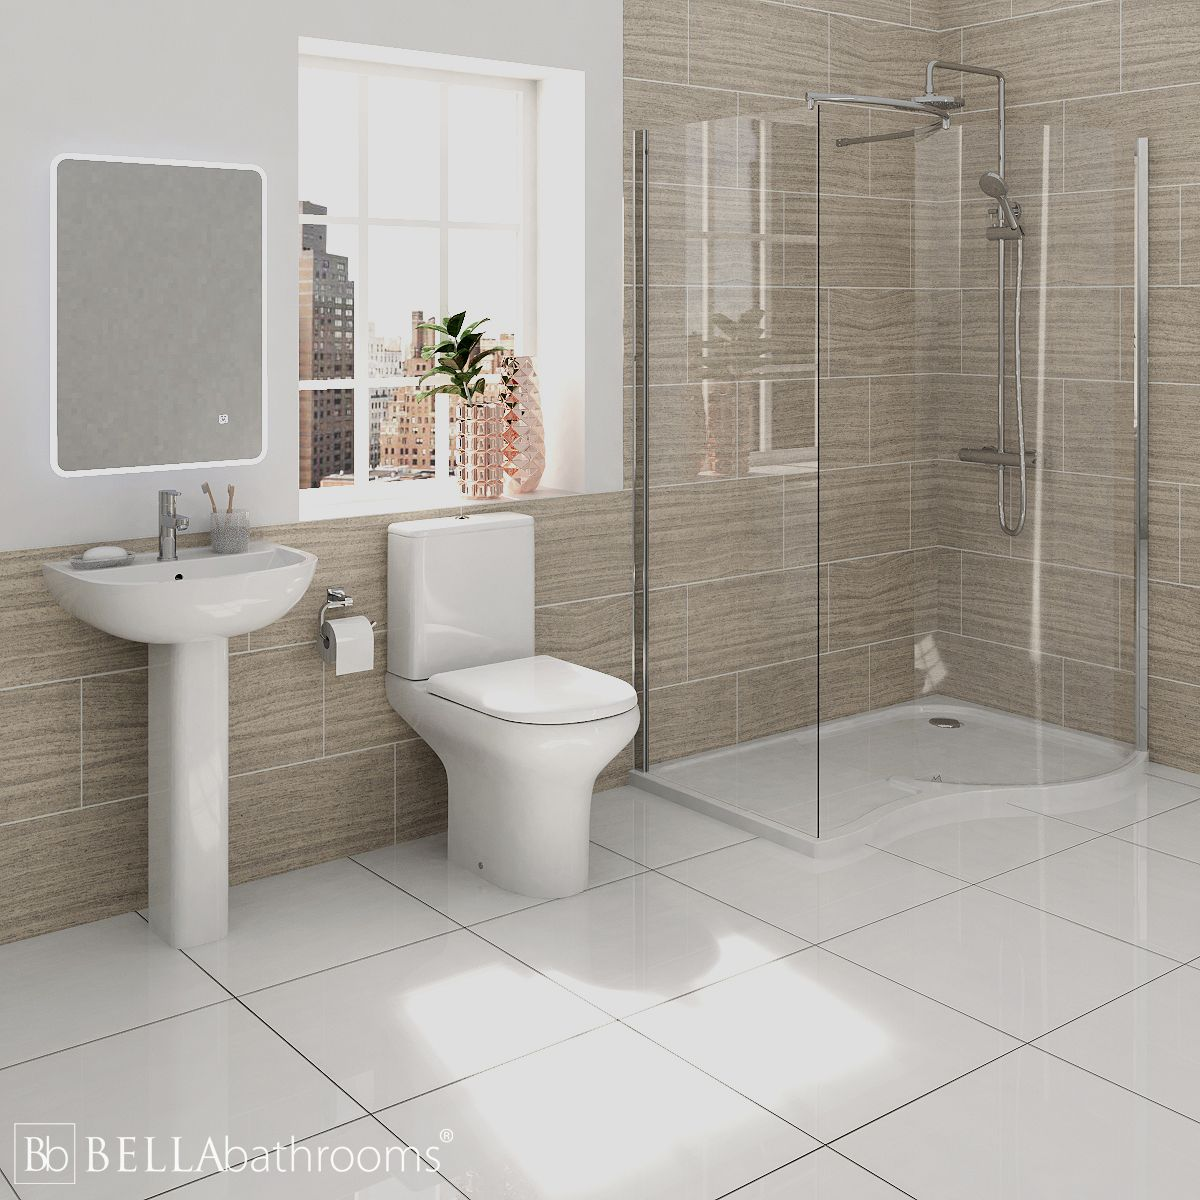 RAK Compact Bathroom Suite with Pacific Walk-In Shower Enclosure